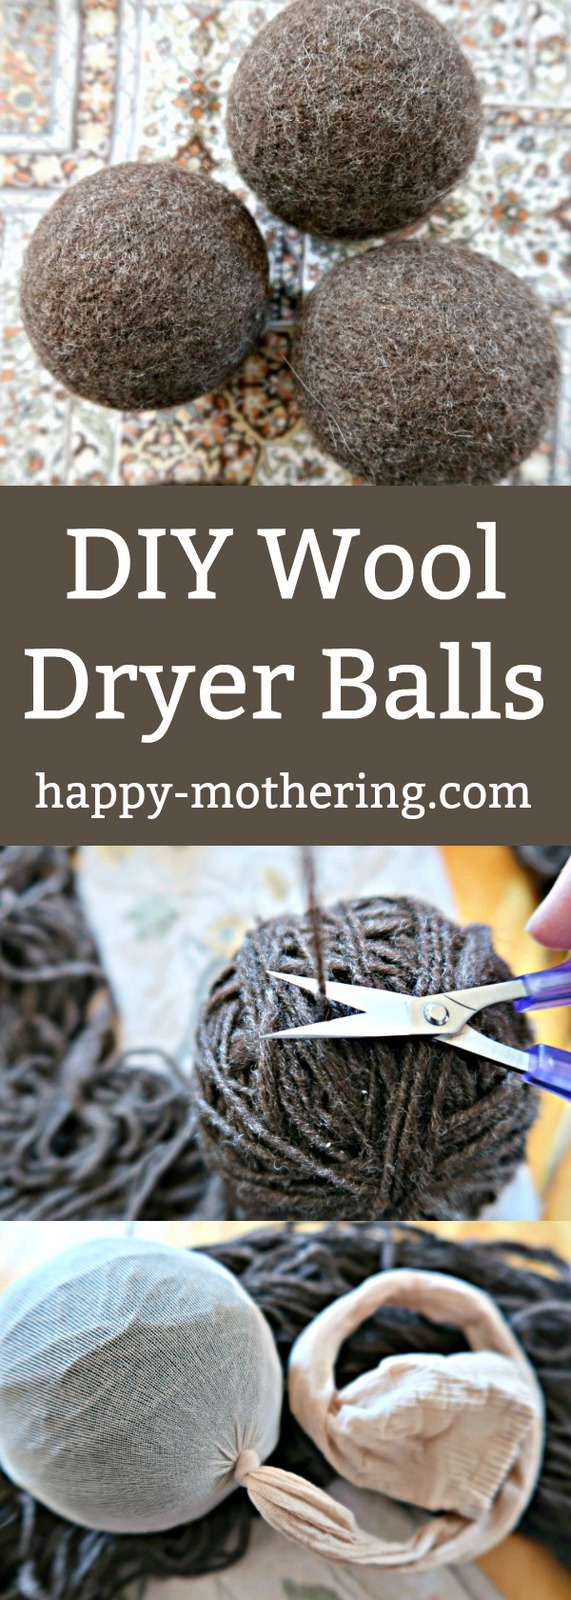 Want wool dryer balls for your natural laundry routine but they're too expensive? Follow this tutorial to learn how to make wool dryer balls that are easy on the budget.